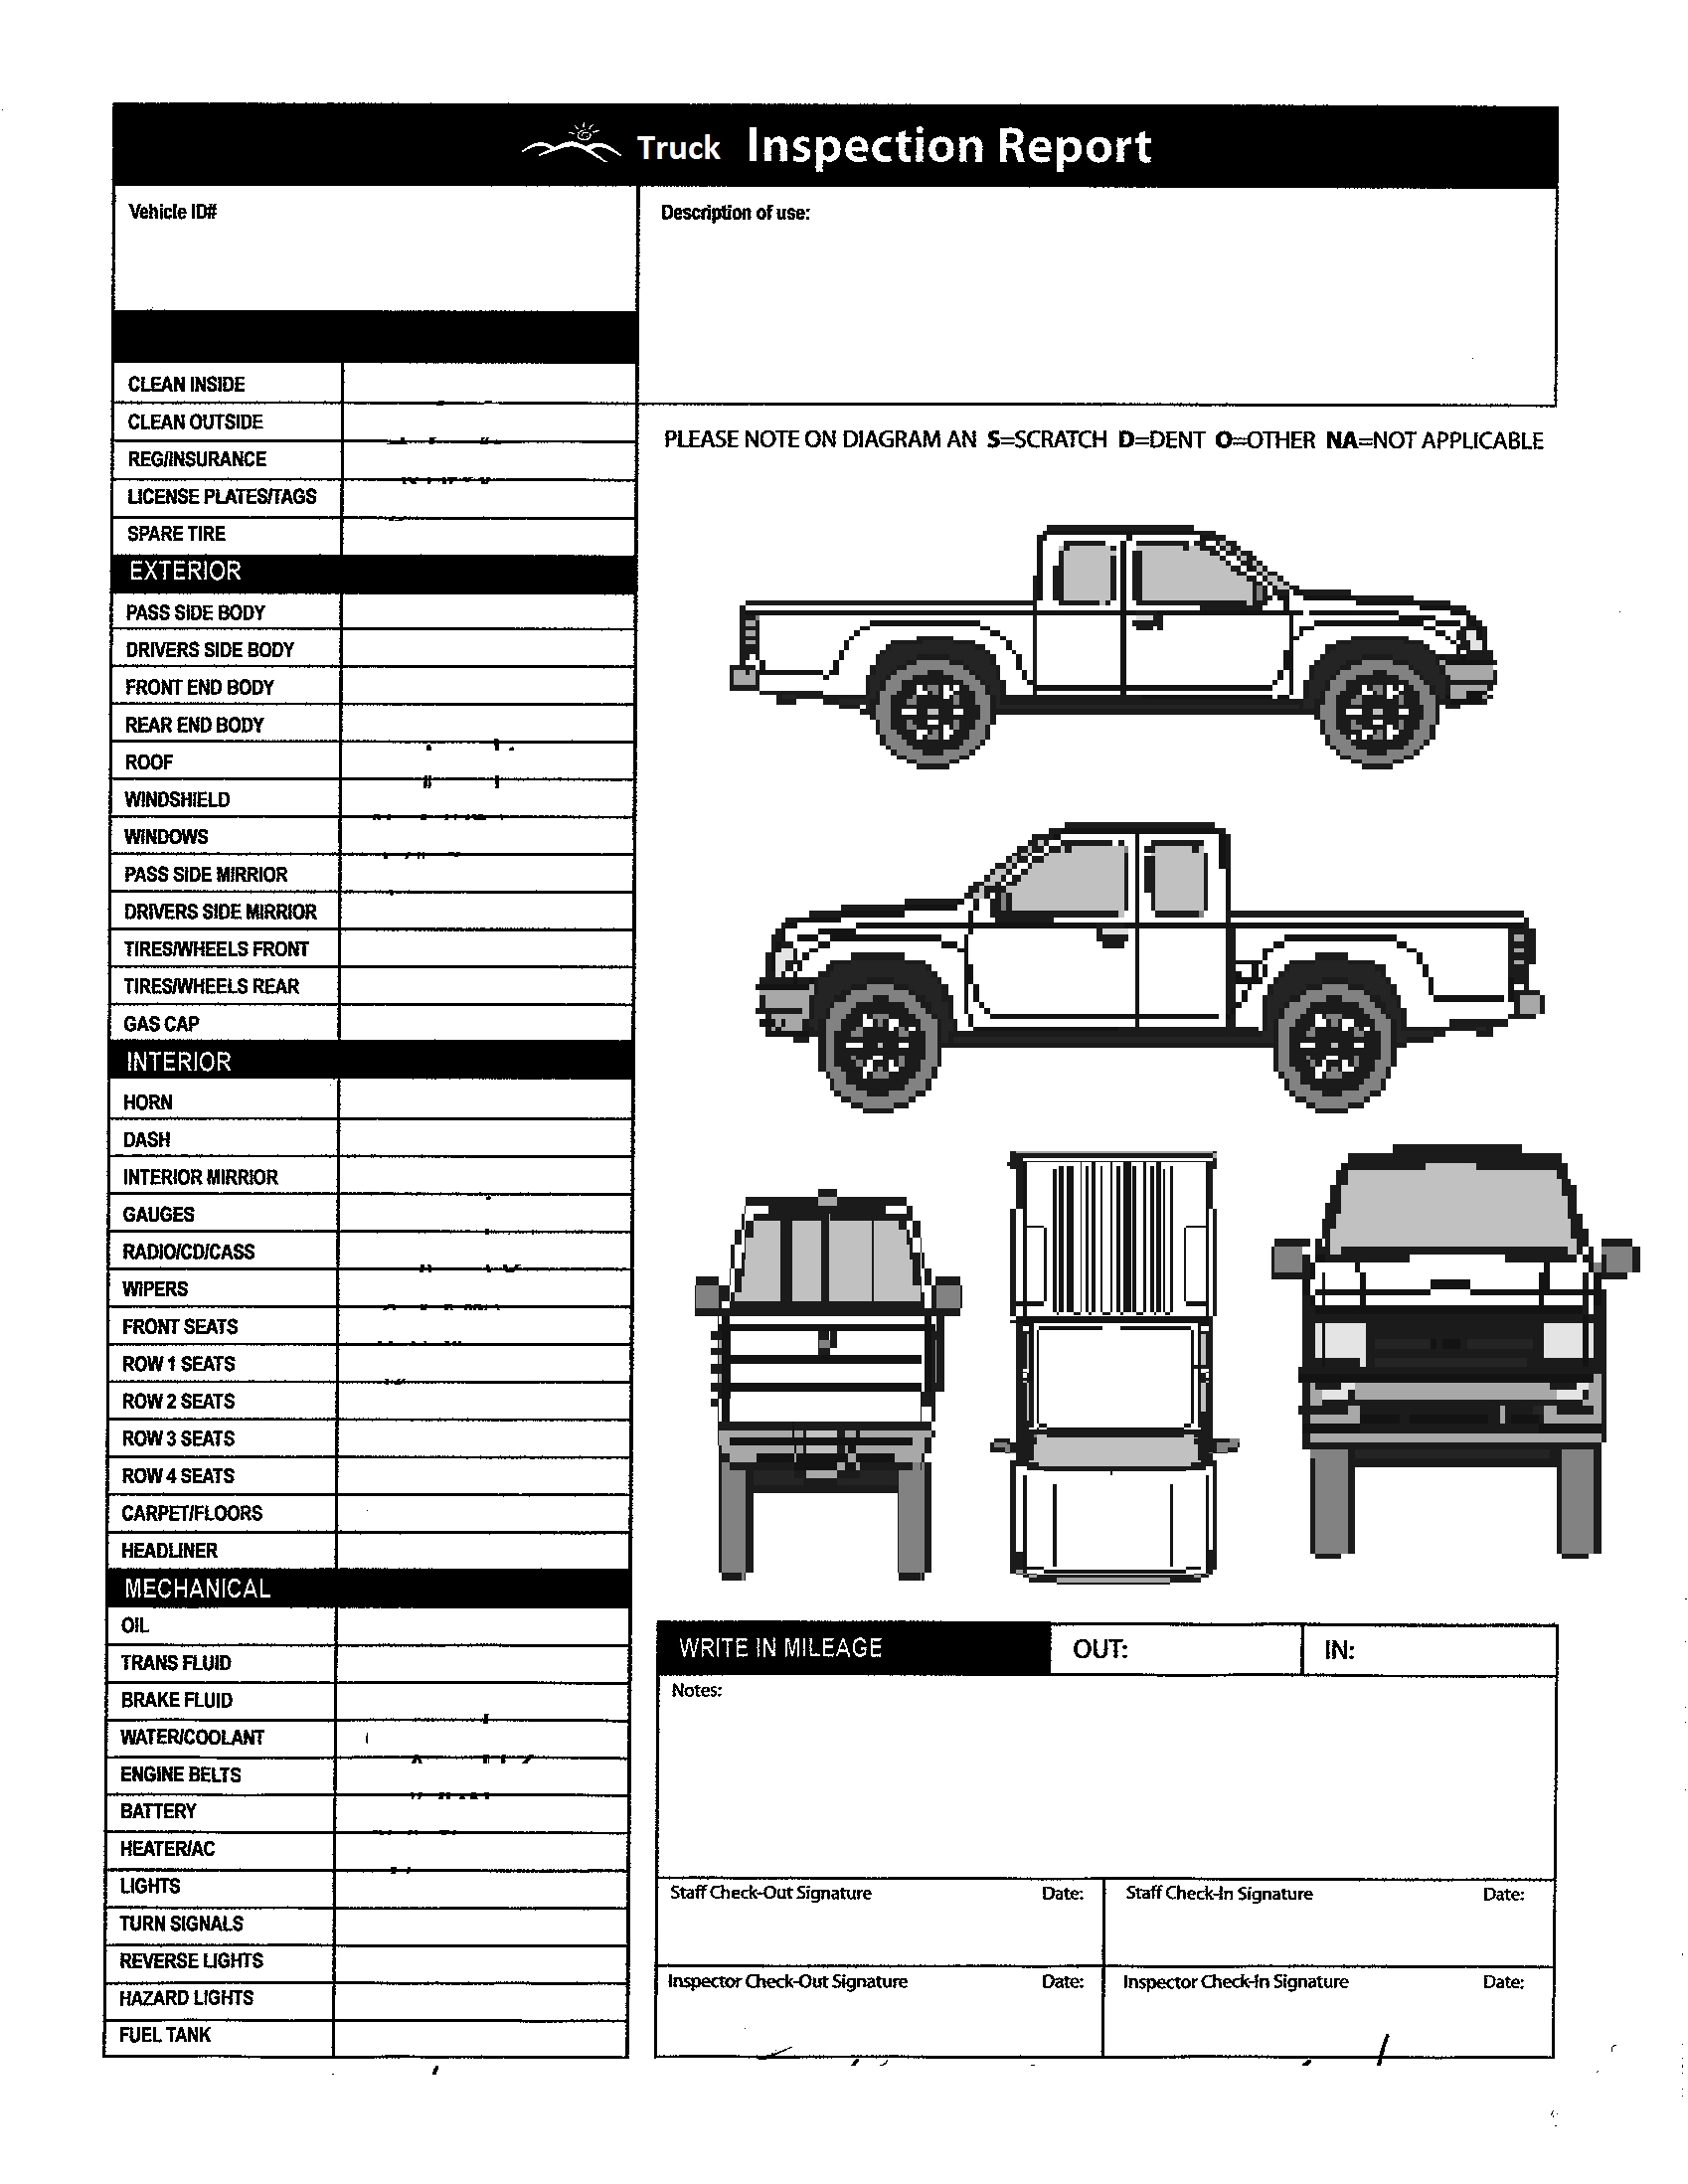 019 Vehicle Inspection Form Template Free Printable Gameshacksfree - Free Printable Vehicle Inspection Form